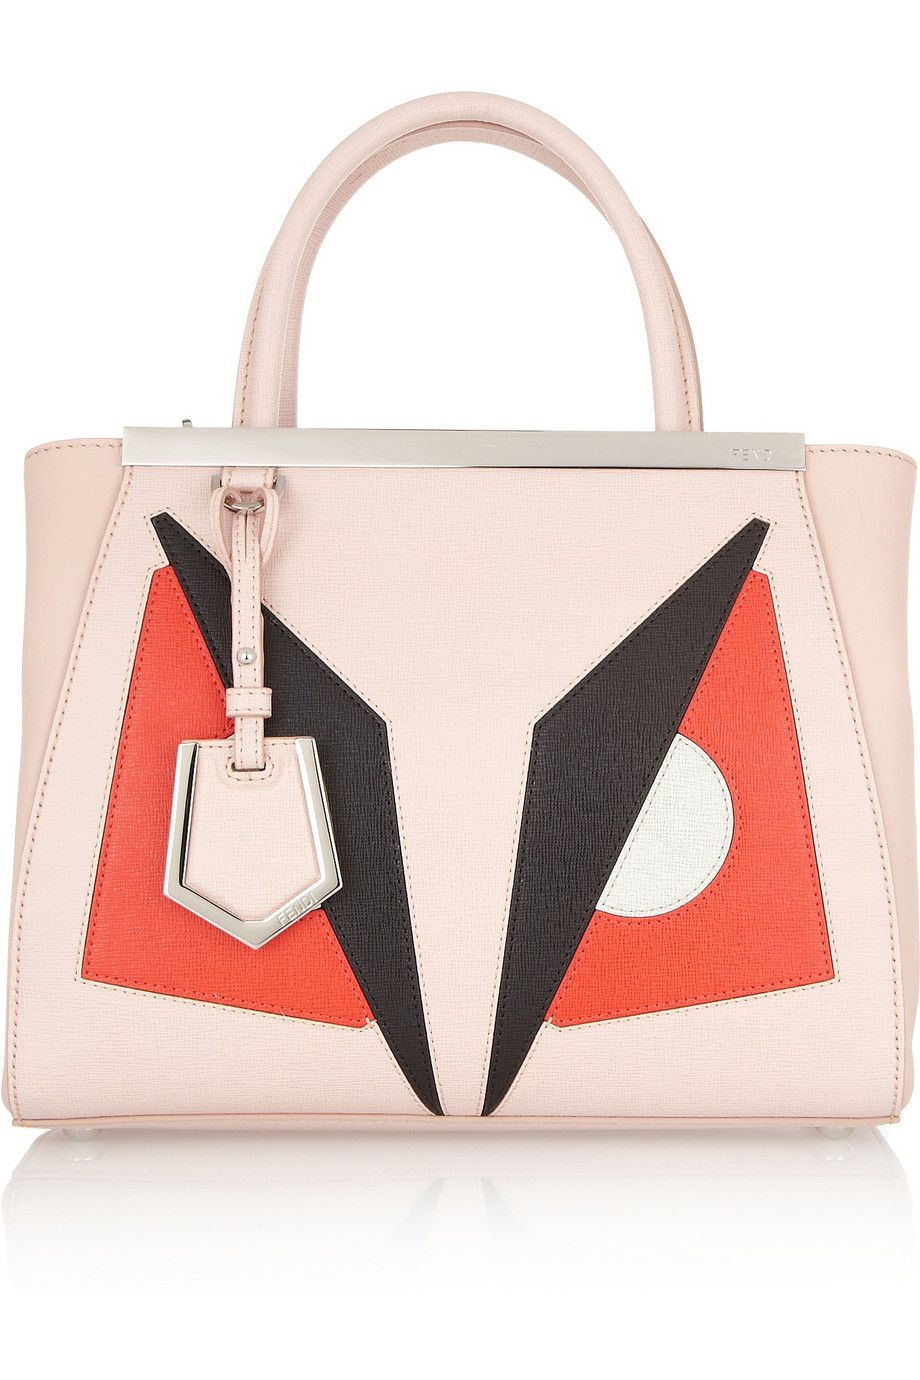 Fendi s Bag Bugs Capsule Collection 68d3f5e474268